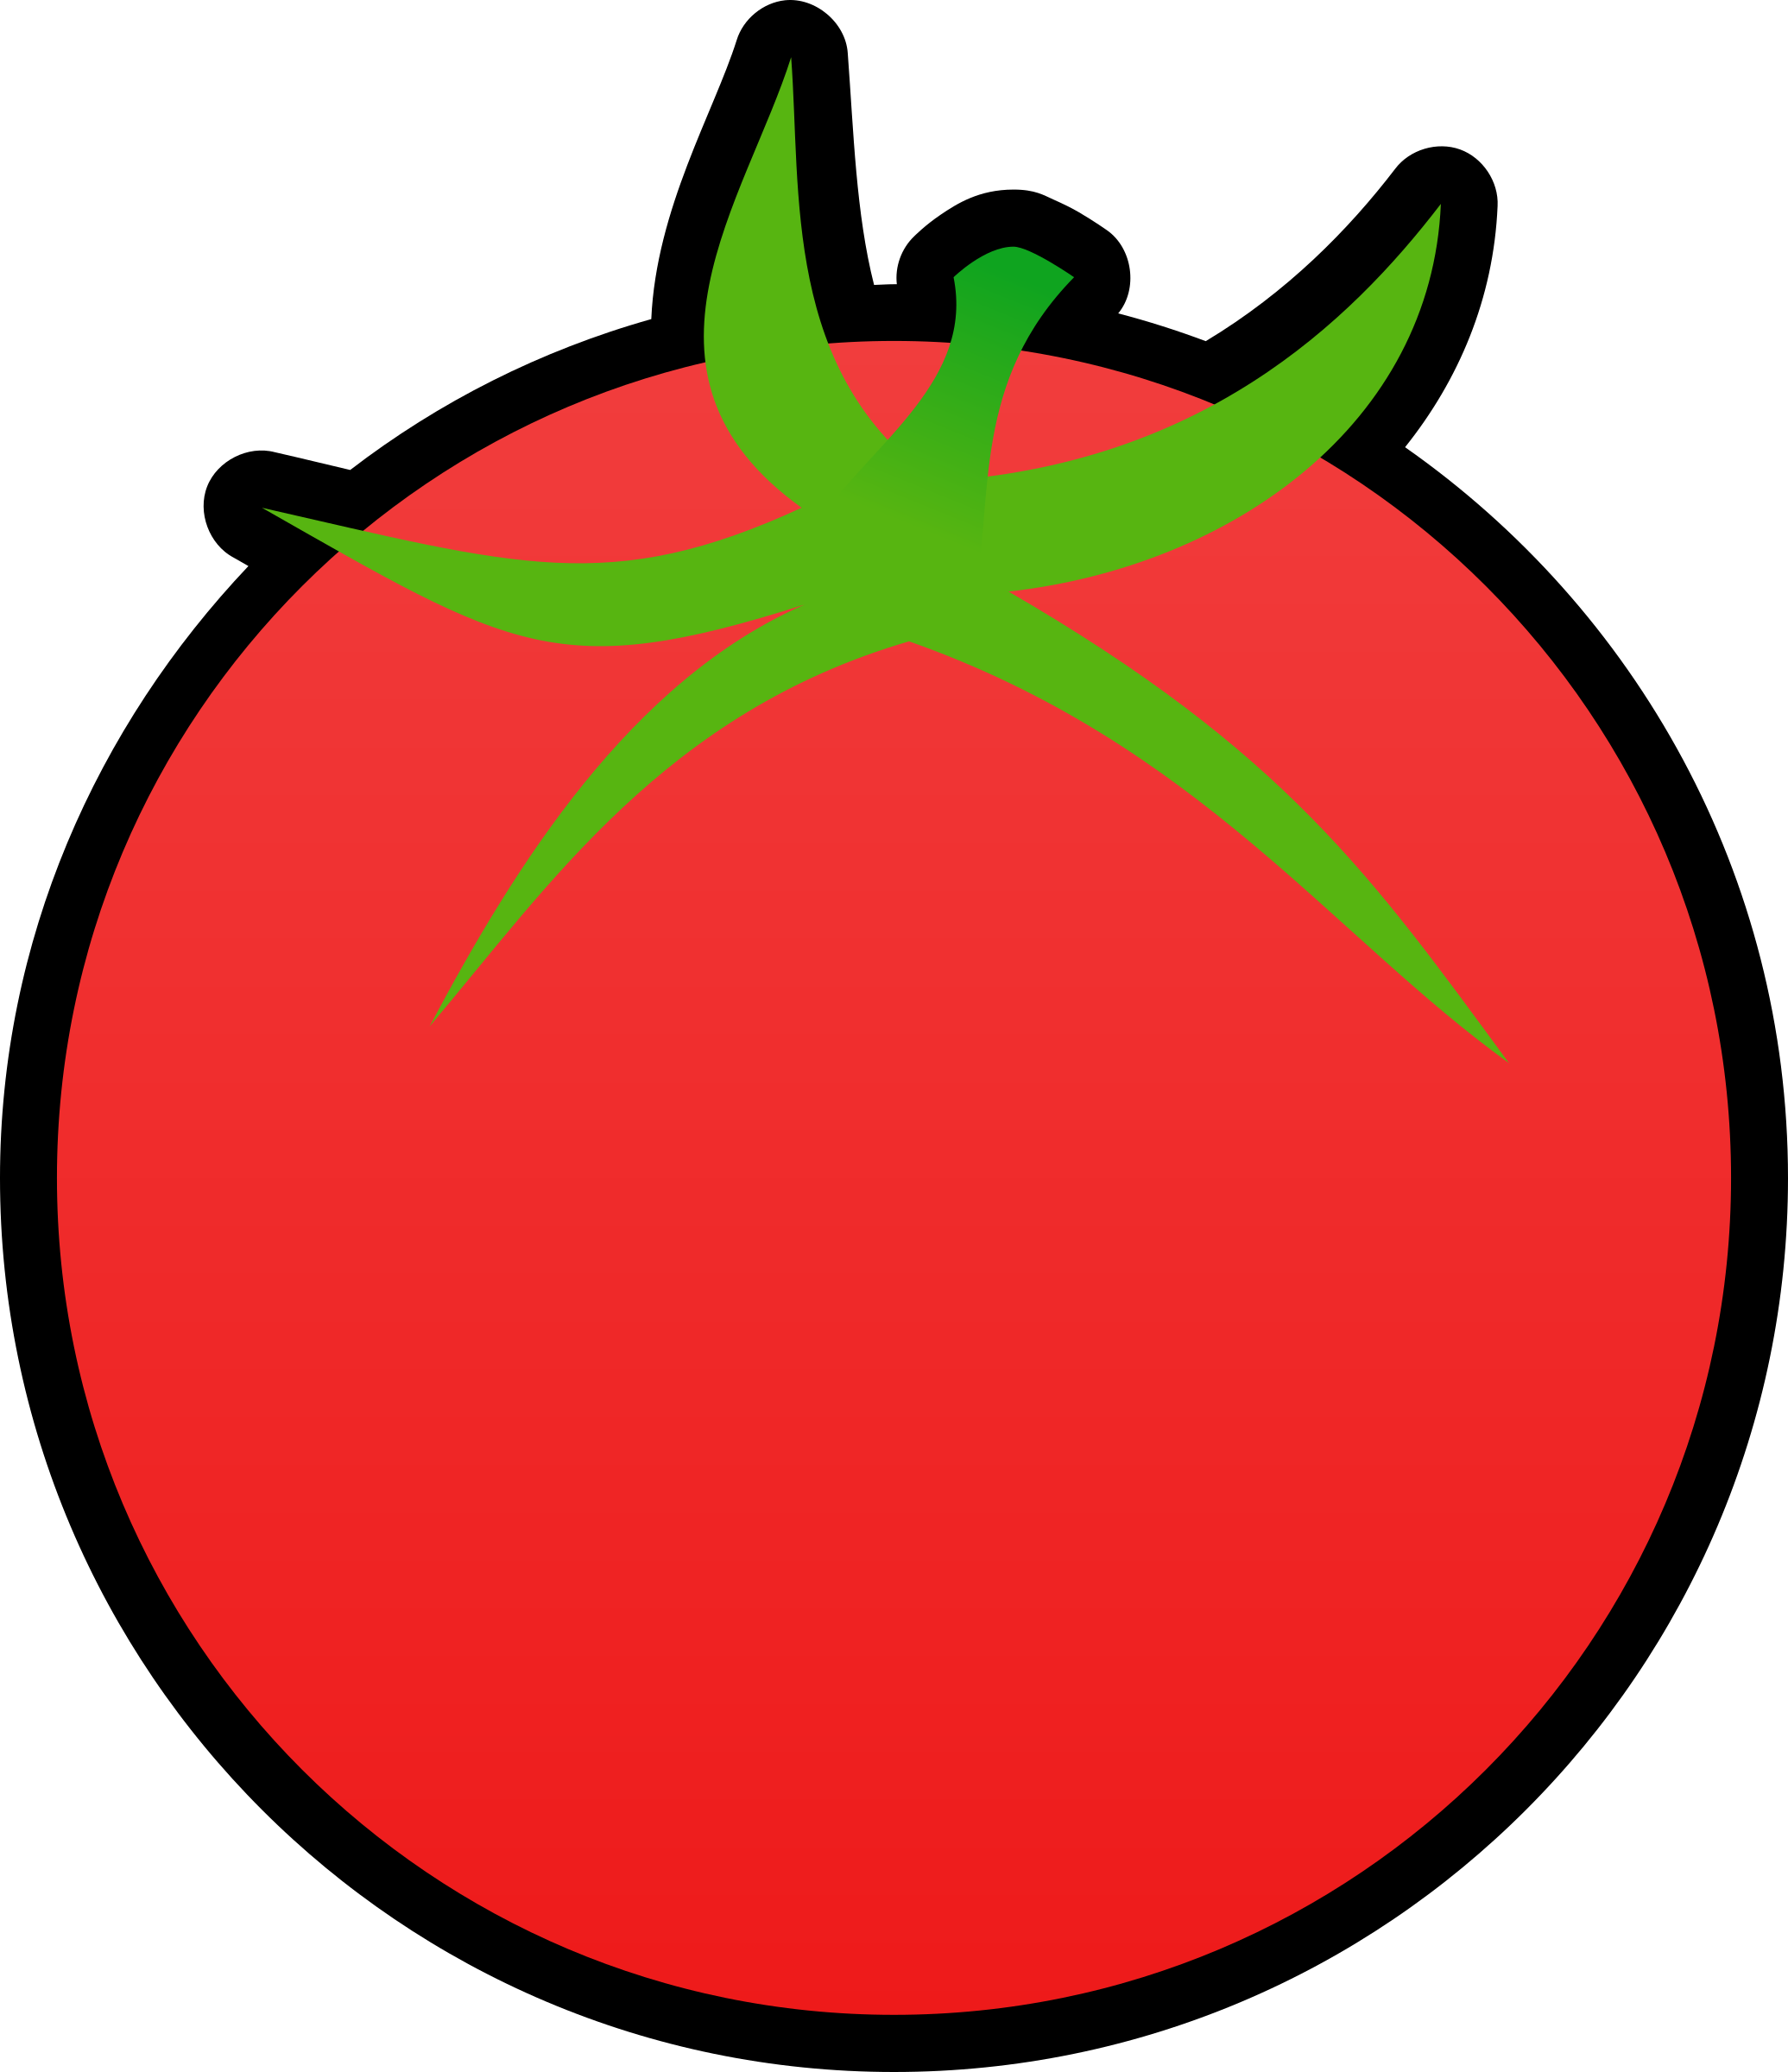 Tomato by qubodup